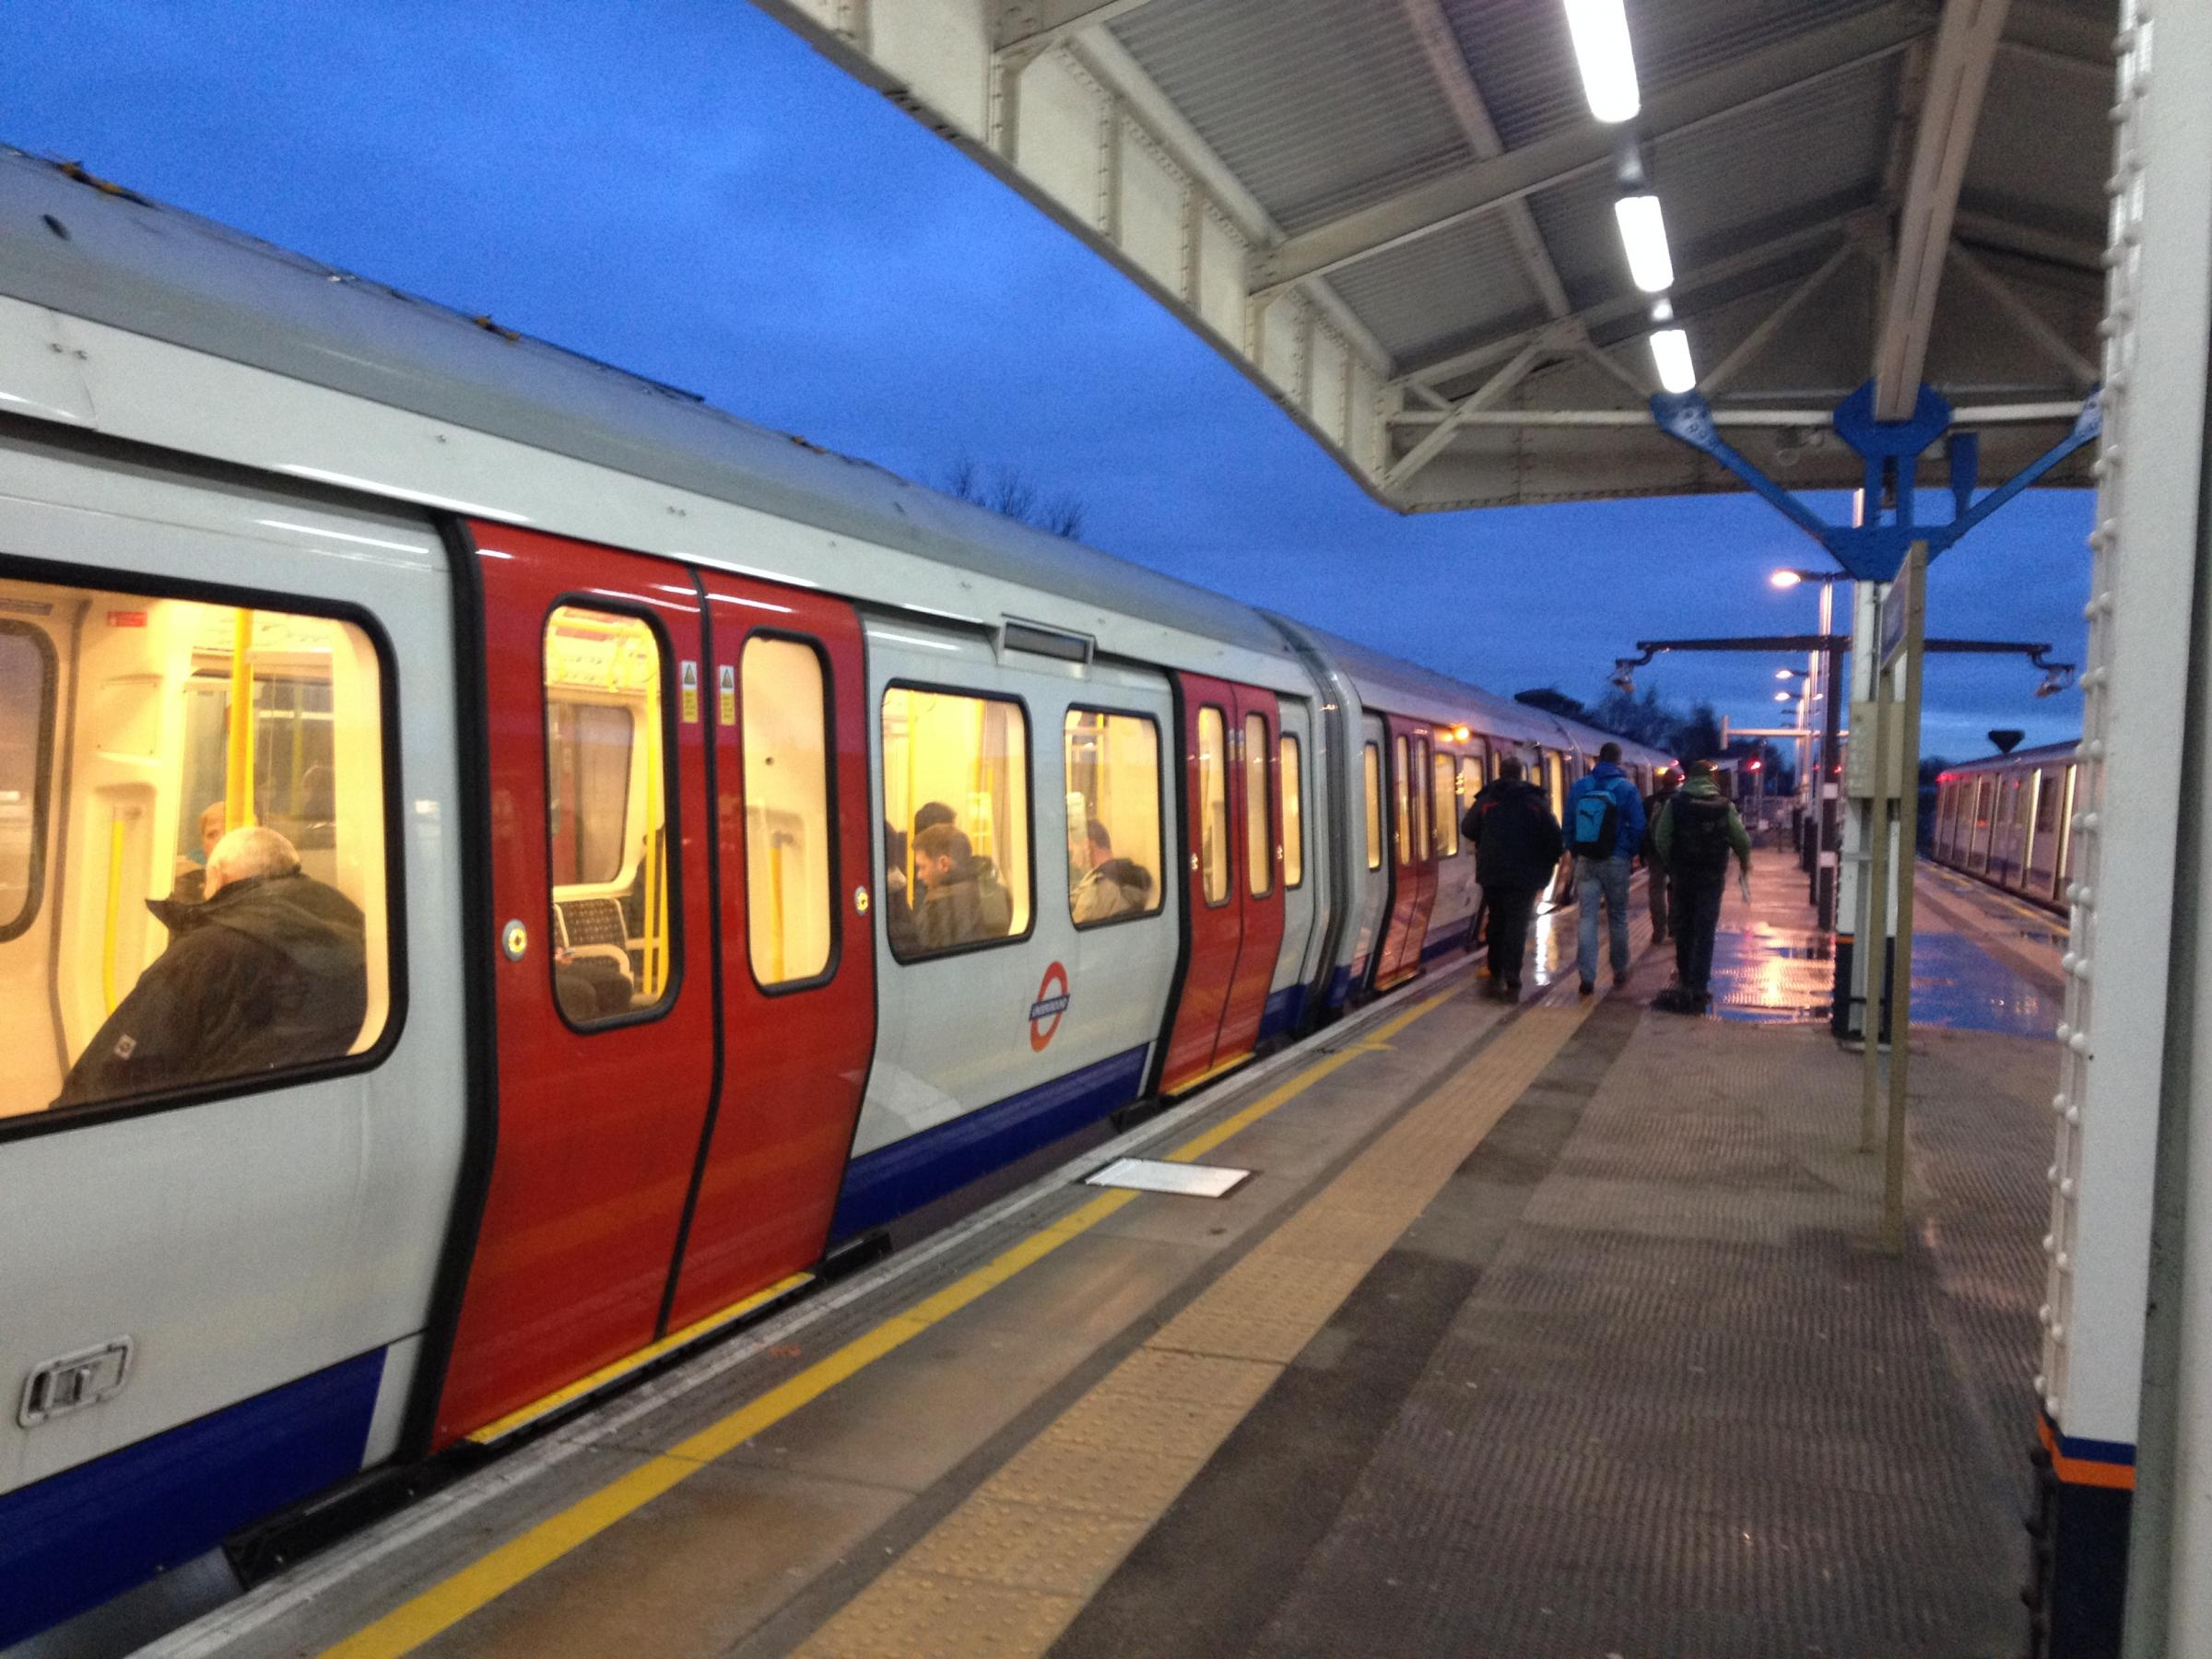 London Underground says it has increased services on the Piccadilly and Jubilee lines to meet greater demand